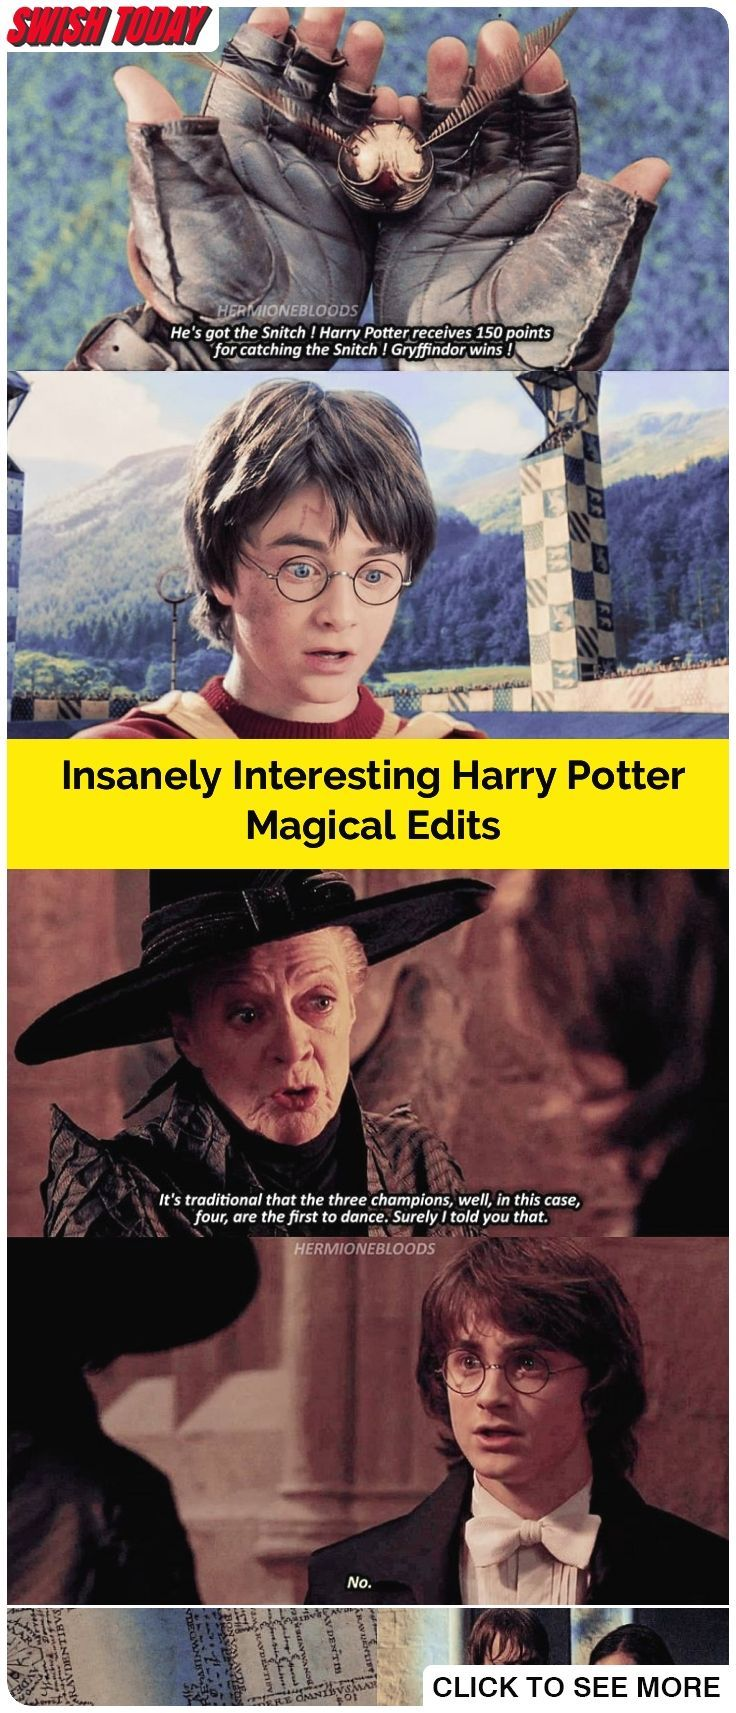 20 Insanely Interesting Harry Potter Magical Edits Harry Potter Memes Funnypictures Lol Ro Harry Potter Harry Potter Quotes Harry Potter Fantastic Beasts